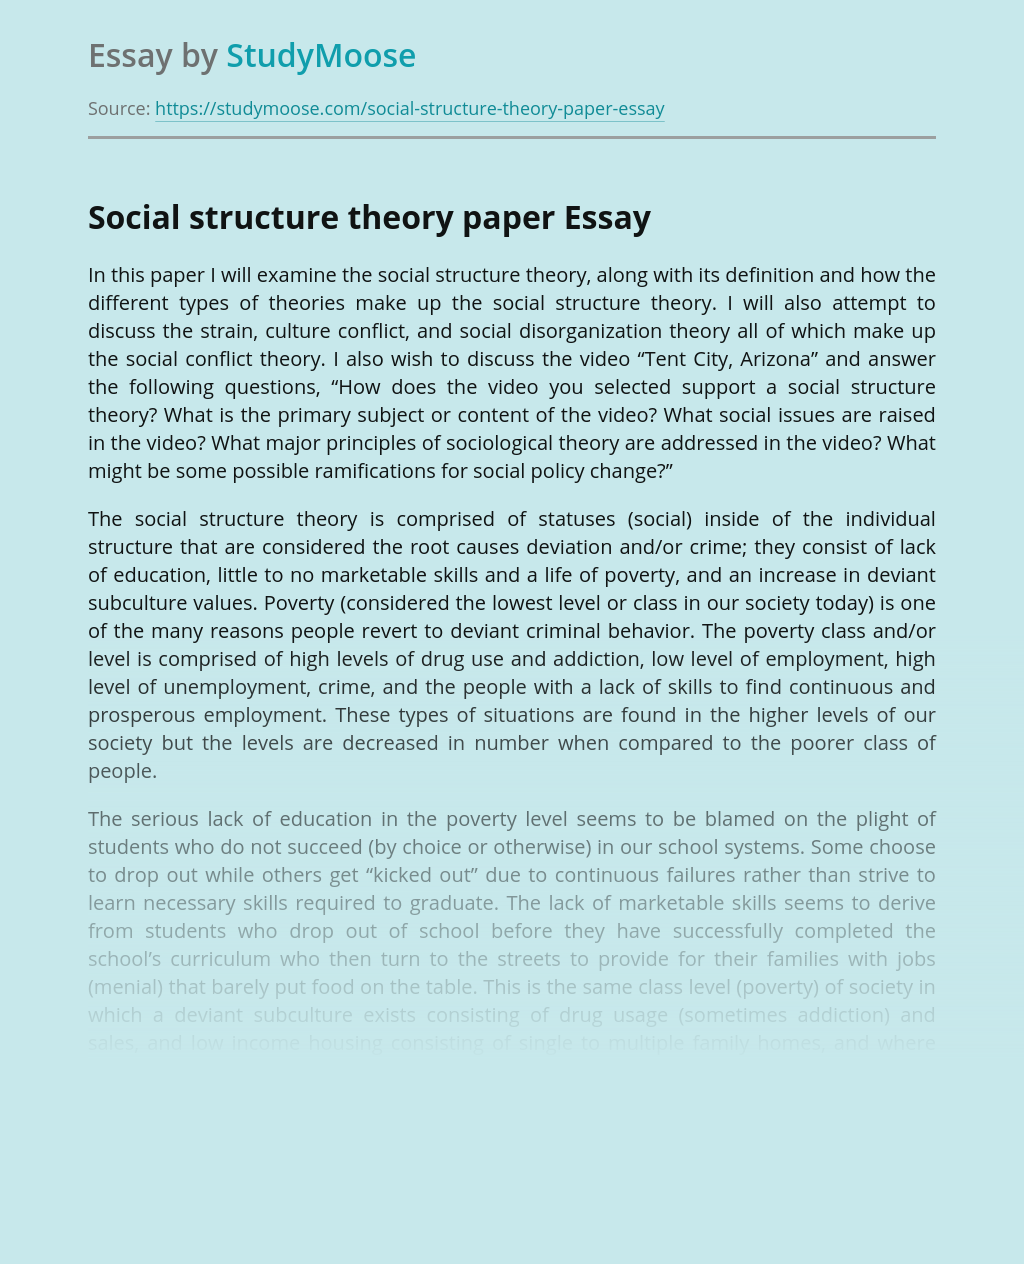 Social structure theory paper